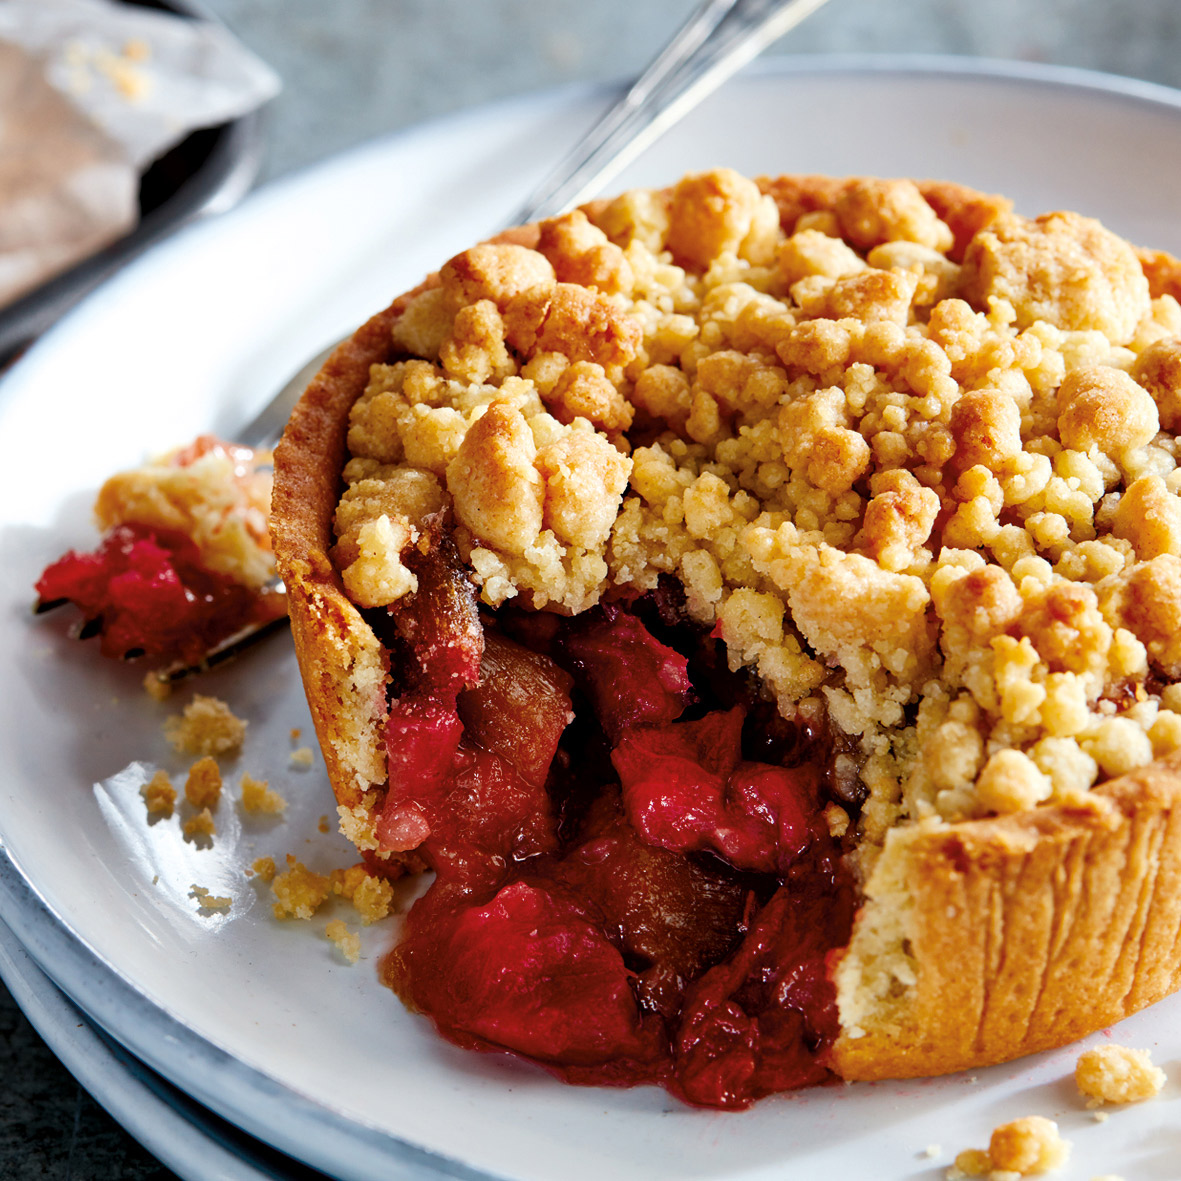 Rhubarb & Strawberry Crumbles